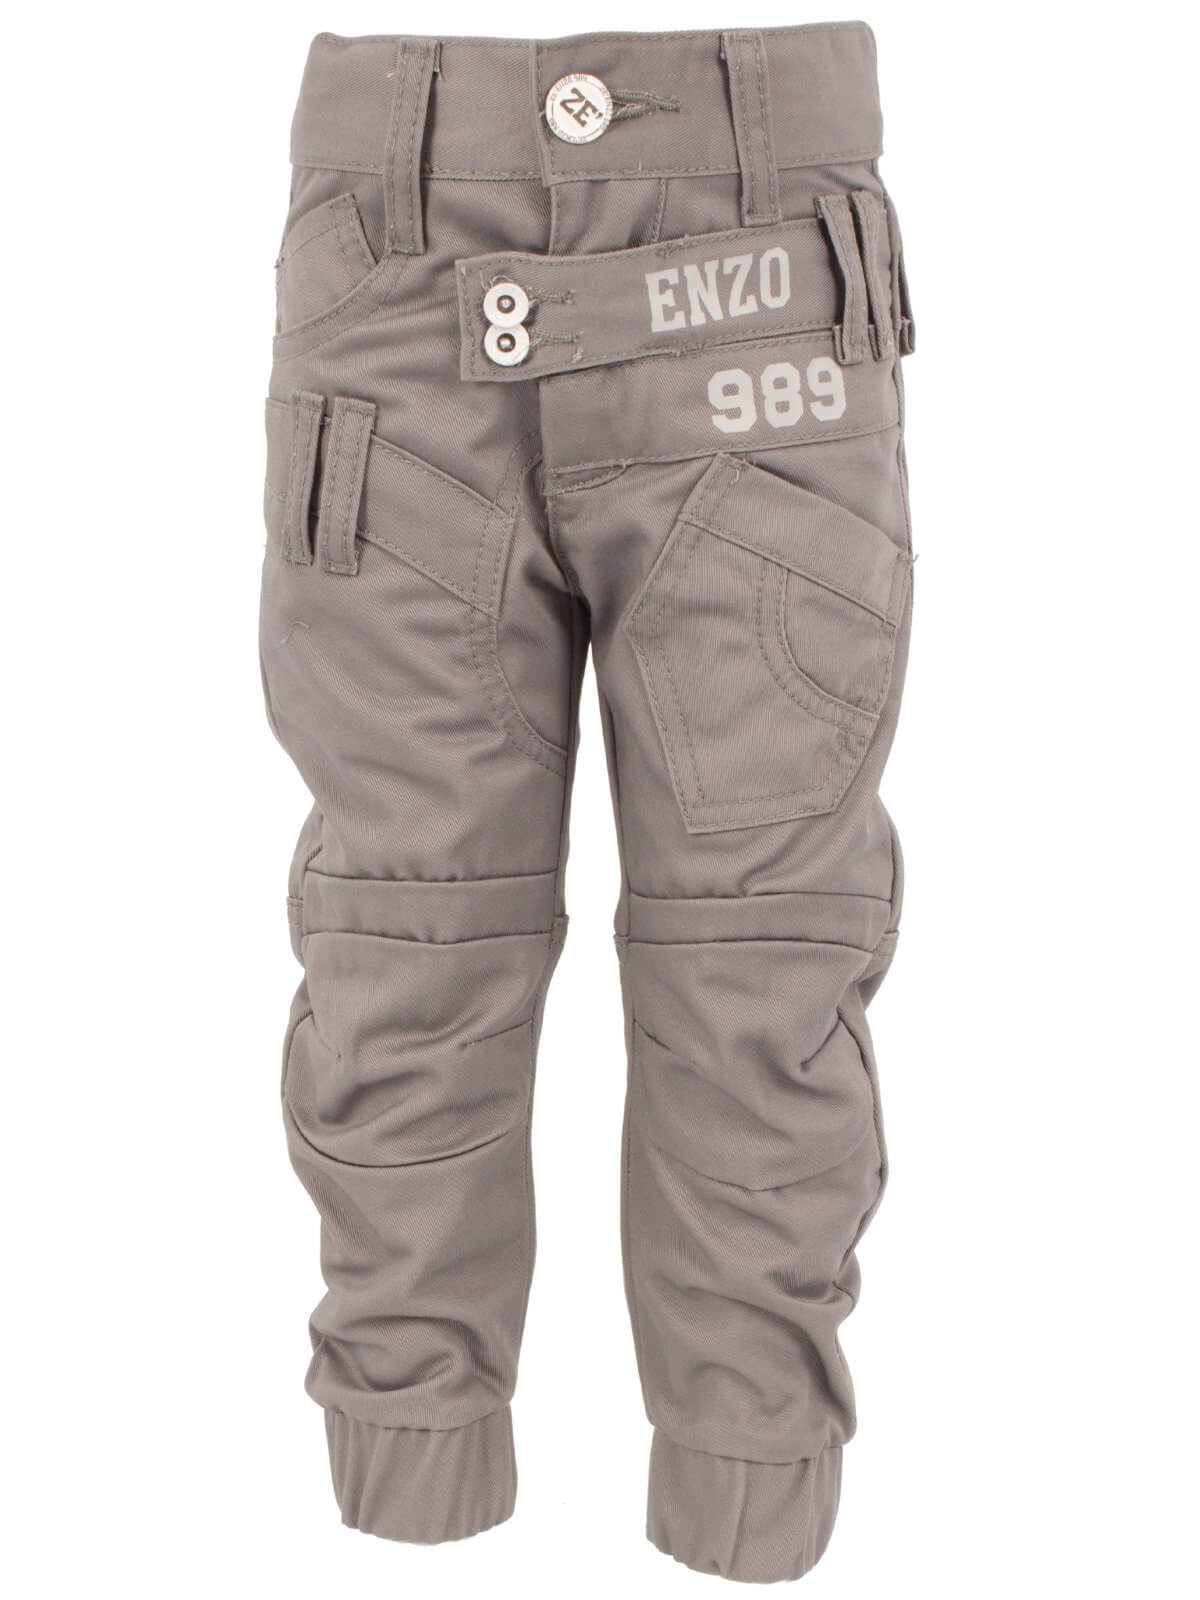 Clearance   Babies Navy Cuffed Fit Denim Jeans   Enzo Designer Babies Clothing